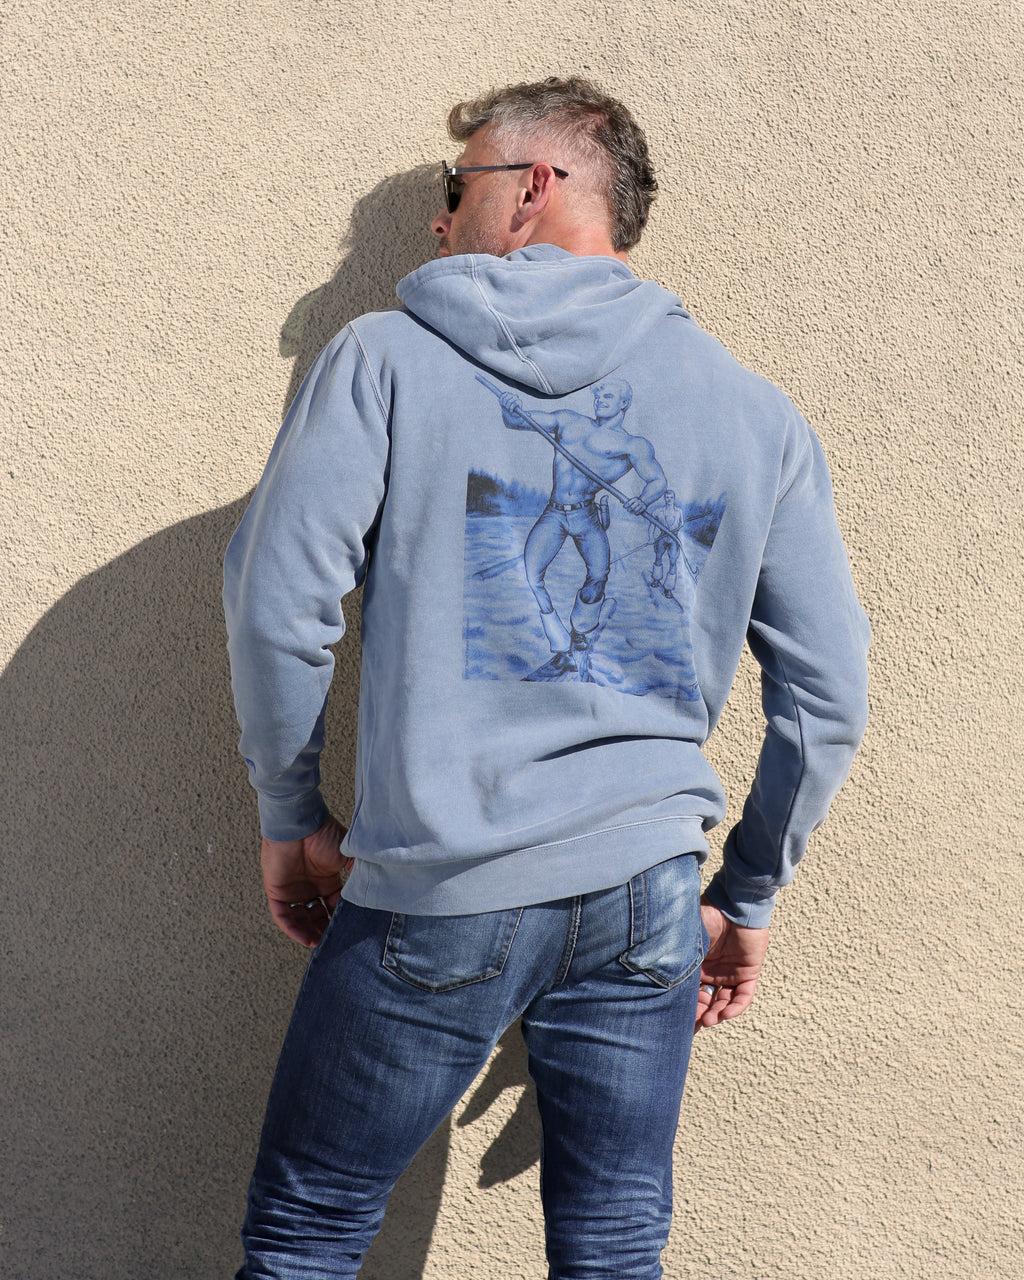 Tom of Finland x Happy Hour Skateboards Hoodie: Just Cruising